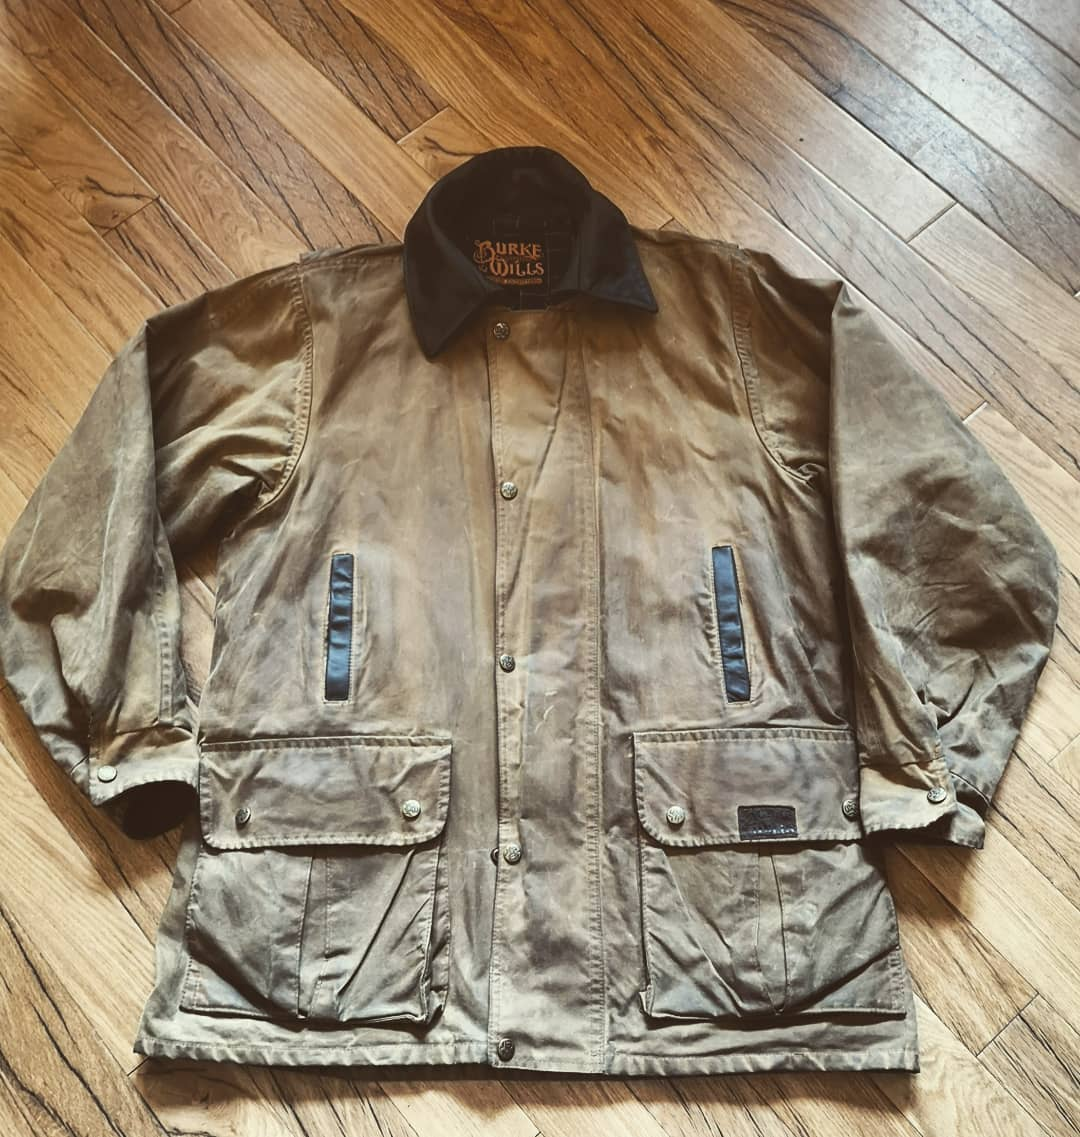 Top Tips for Taking Care of Your Wax Jacket